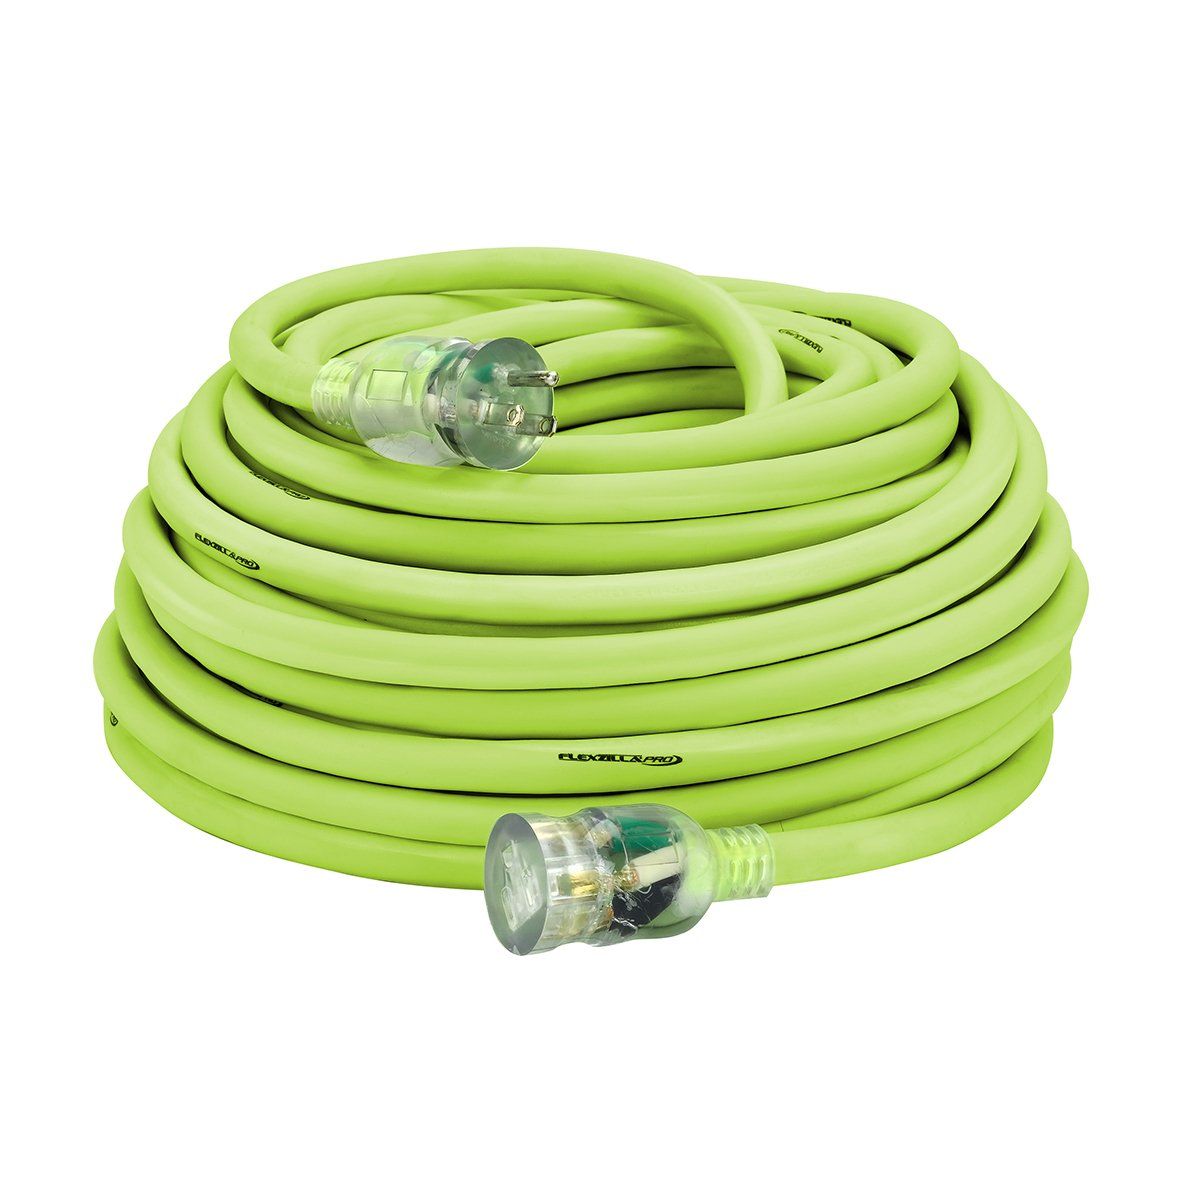 Flexzilla Pro Extension Cord, 10/3 AWG SJTW, 100 ft., Lighted Plug, Indoor/Outdoor, ZillaGreen - 727-103100FZL5F